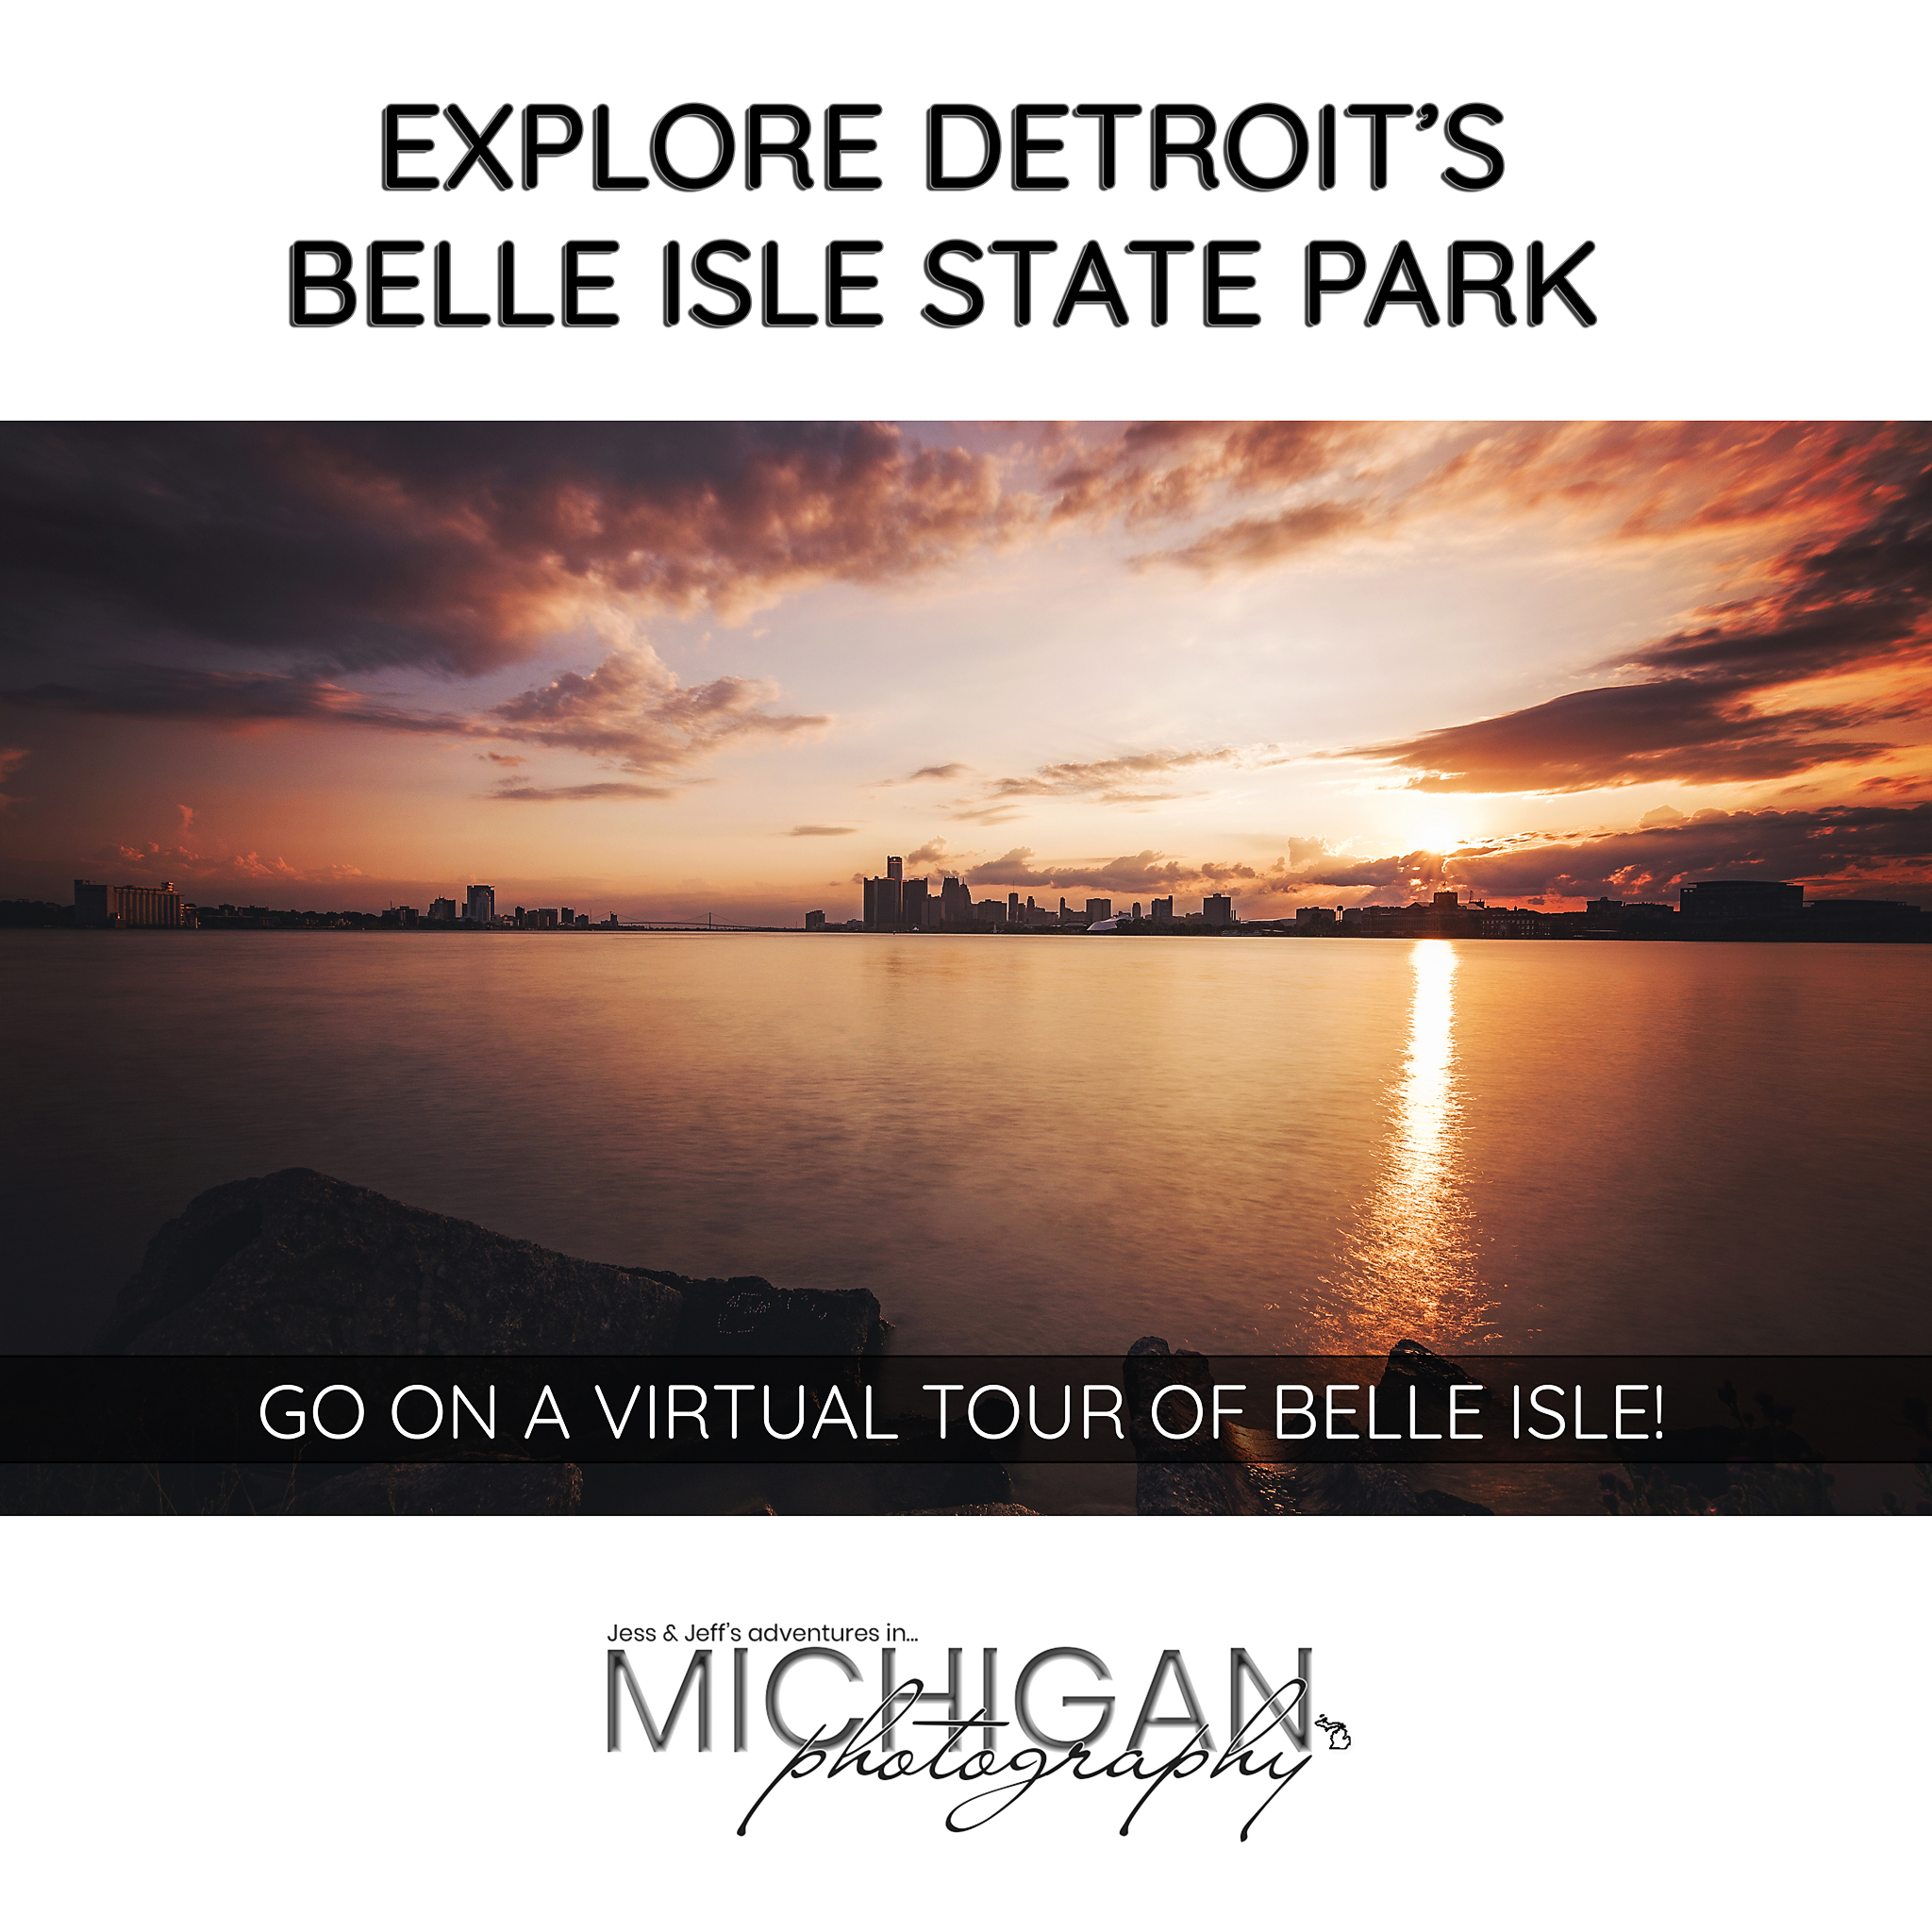 Take a virtual tour of Belle Isle State Park